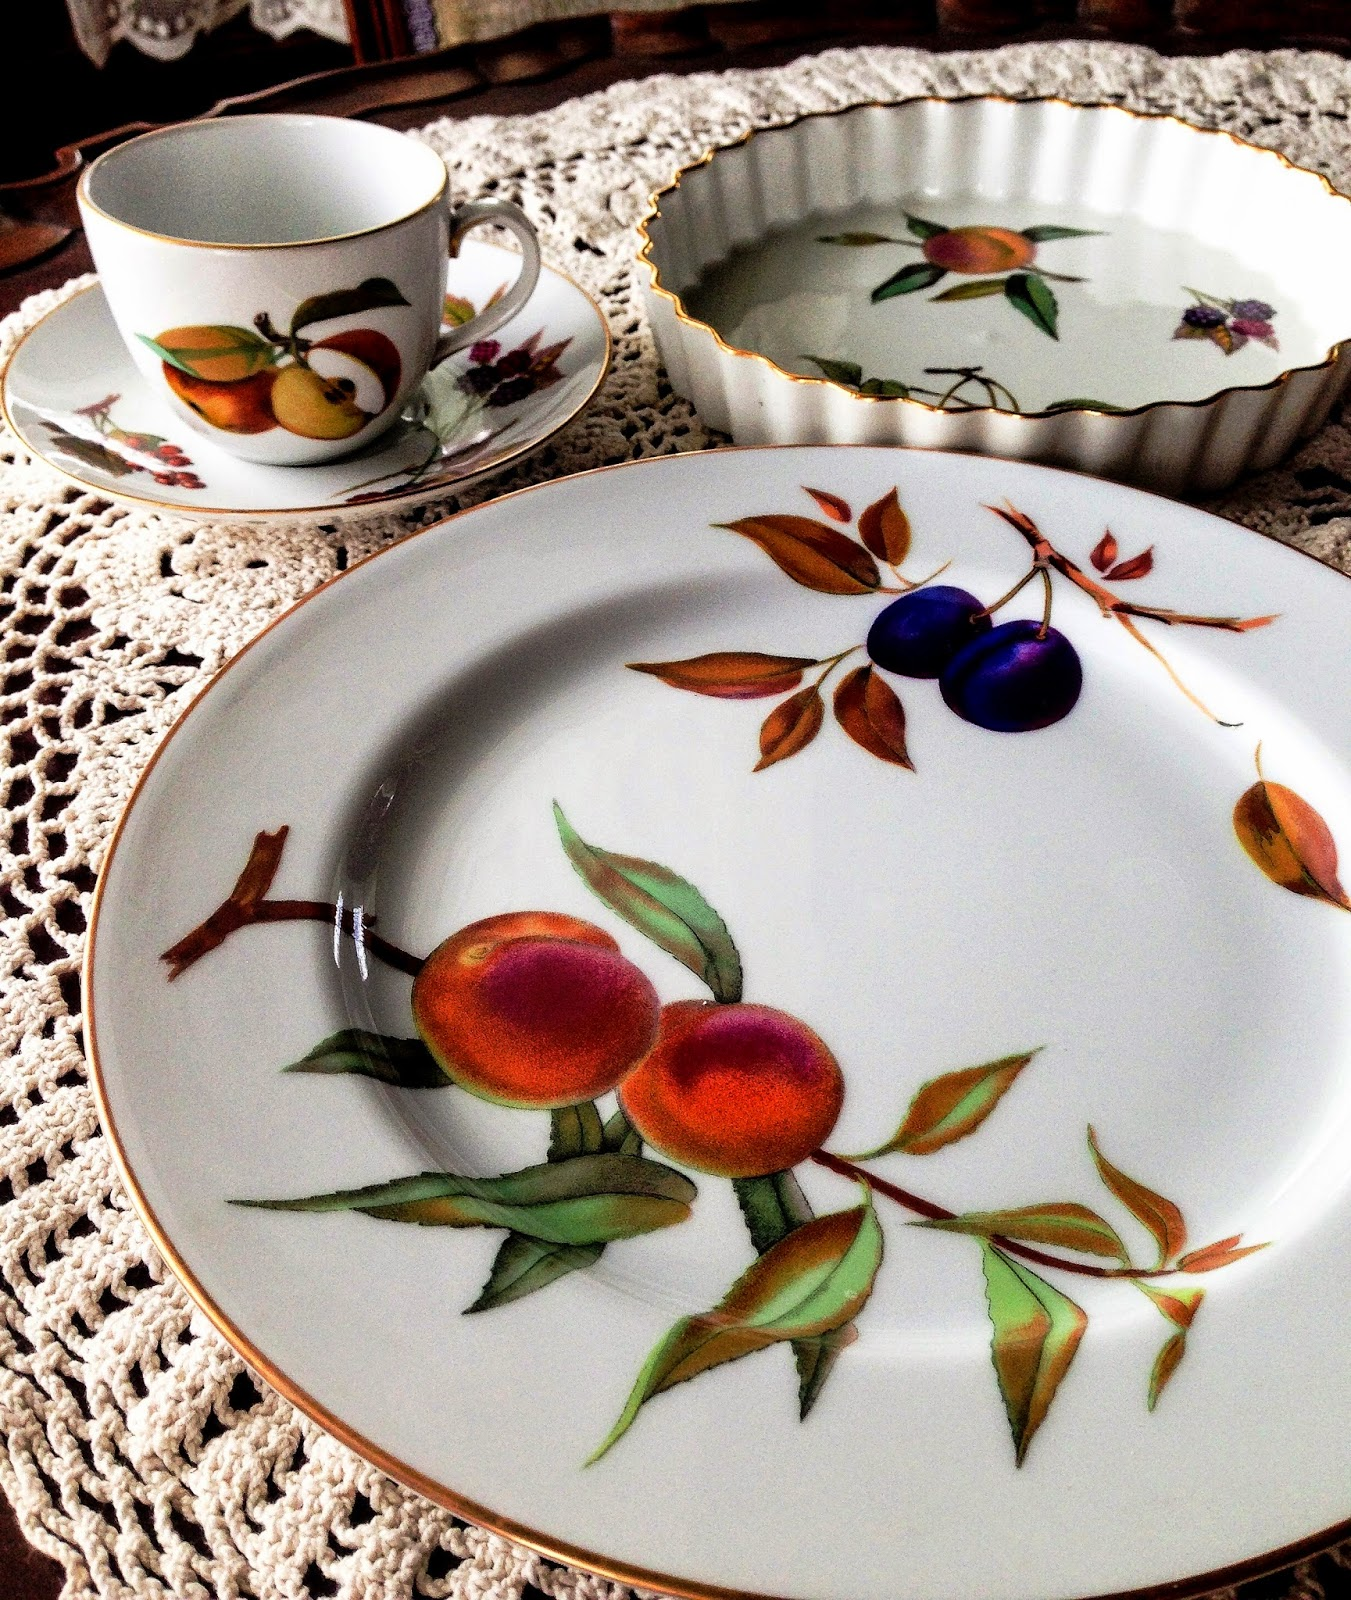 In 1982 I Thought This Would Be A Great Everyday Pattern Pretty But Not Too Fussy Or Fancy Notice The Gold Rim Had No Idea What Was About To